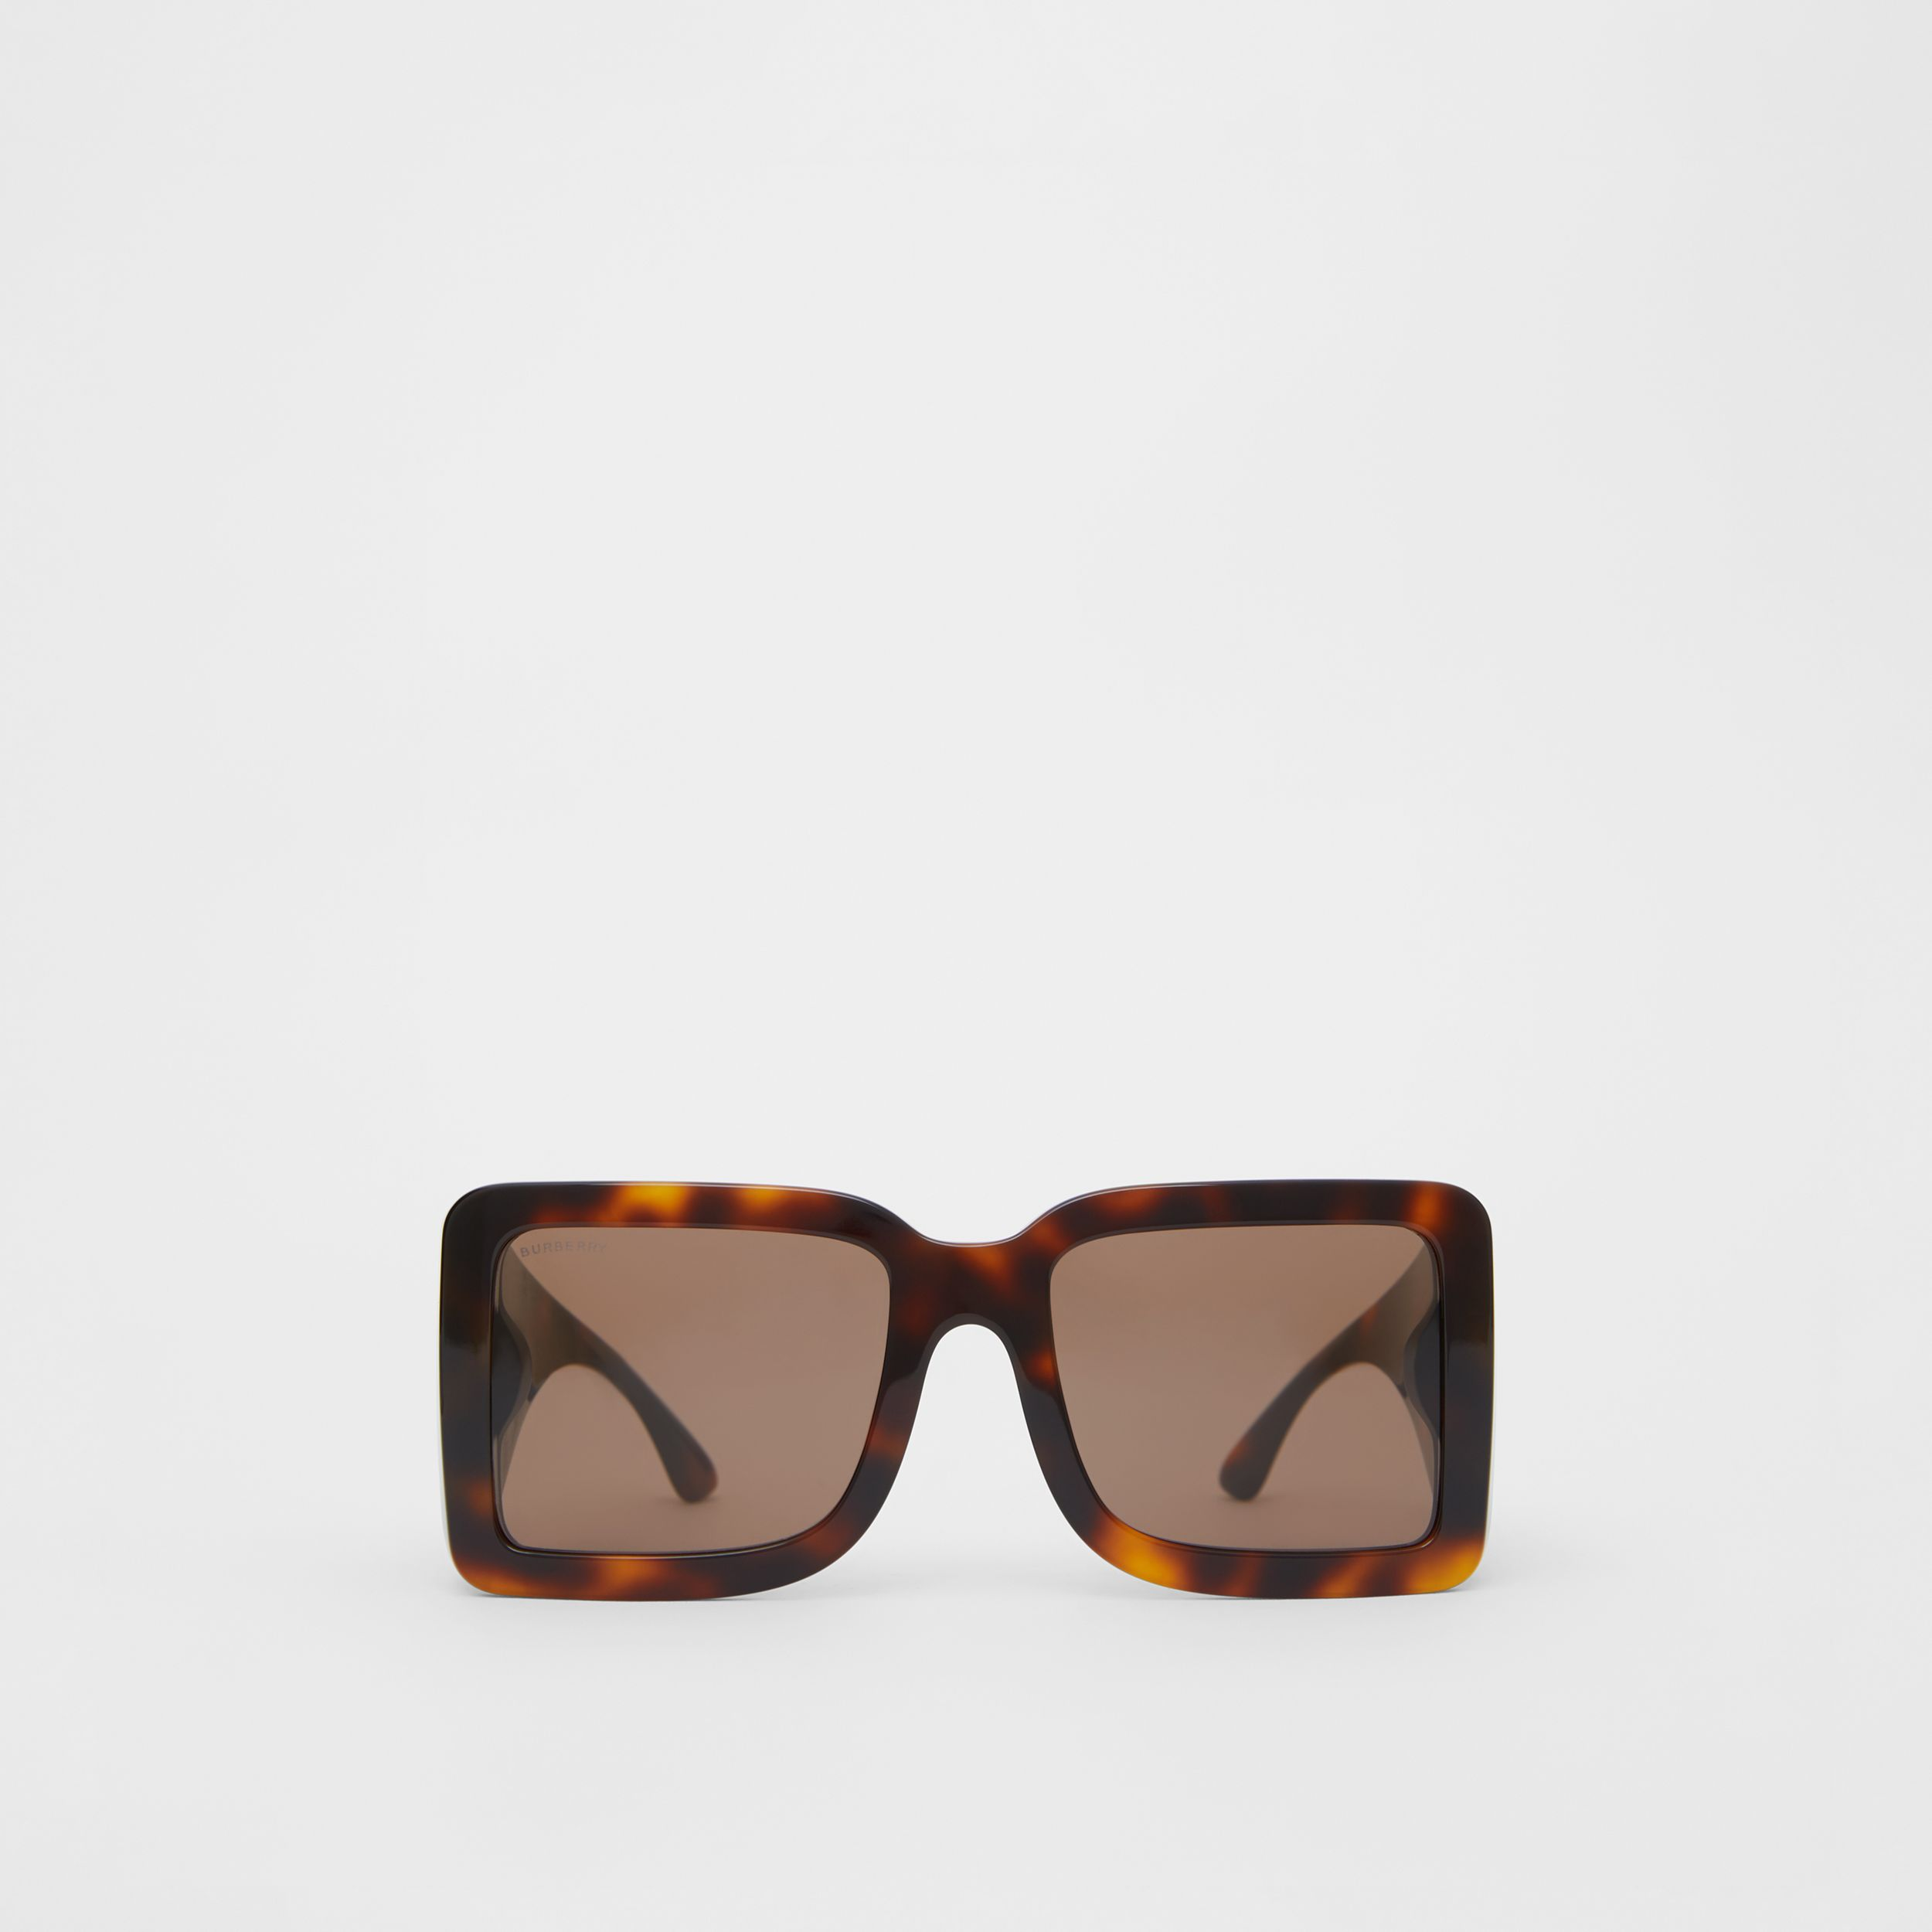 B Motif Square Frame Sunglasses in Tortoise Amber - Women | Burberry - 1